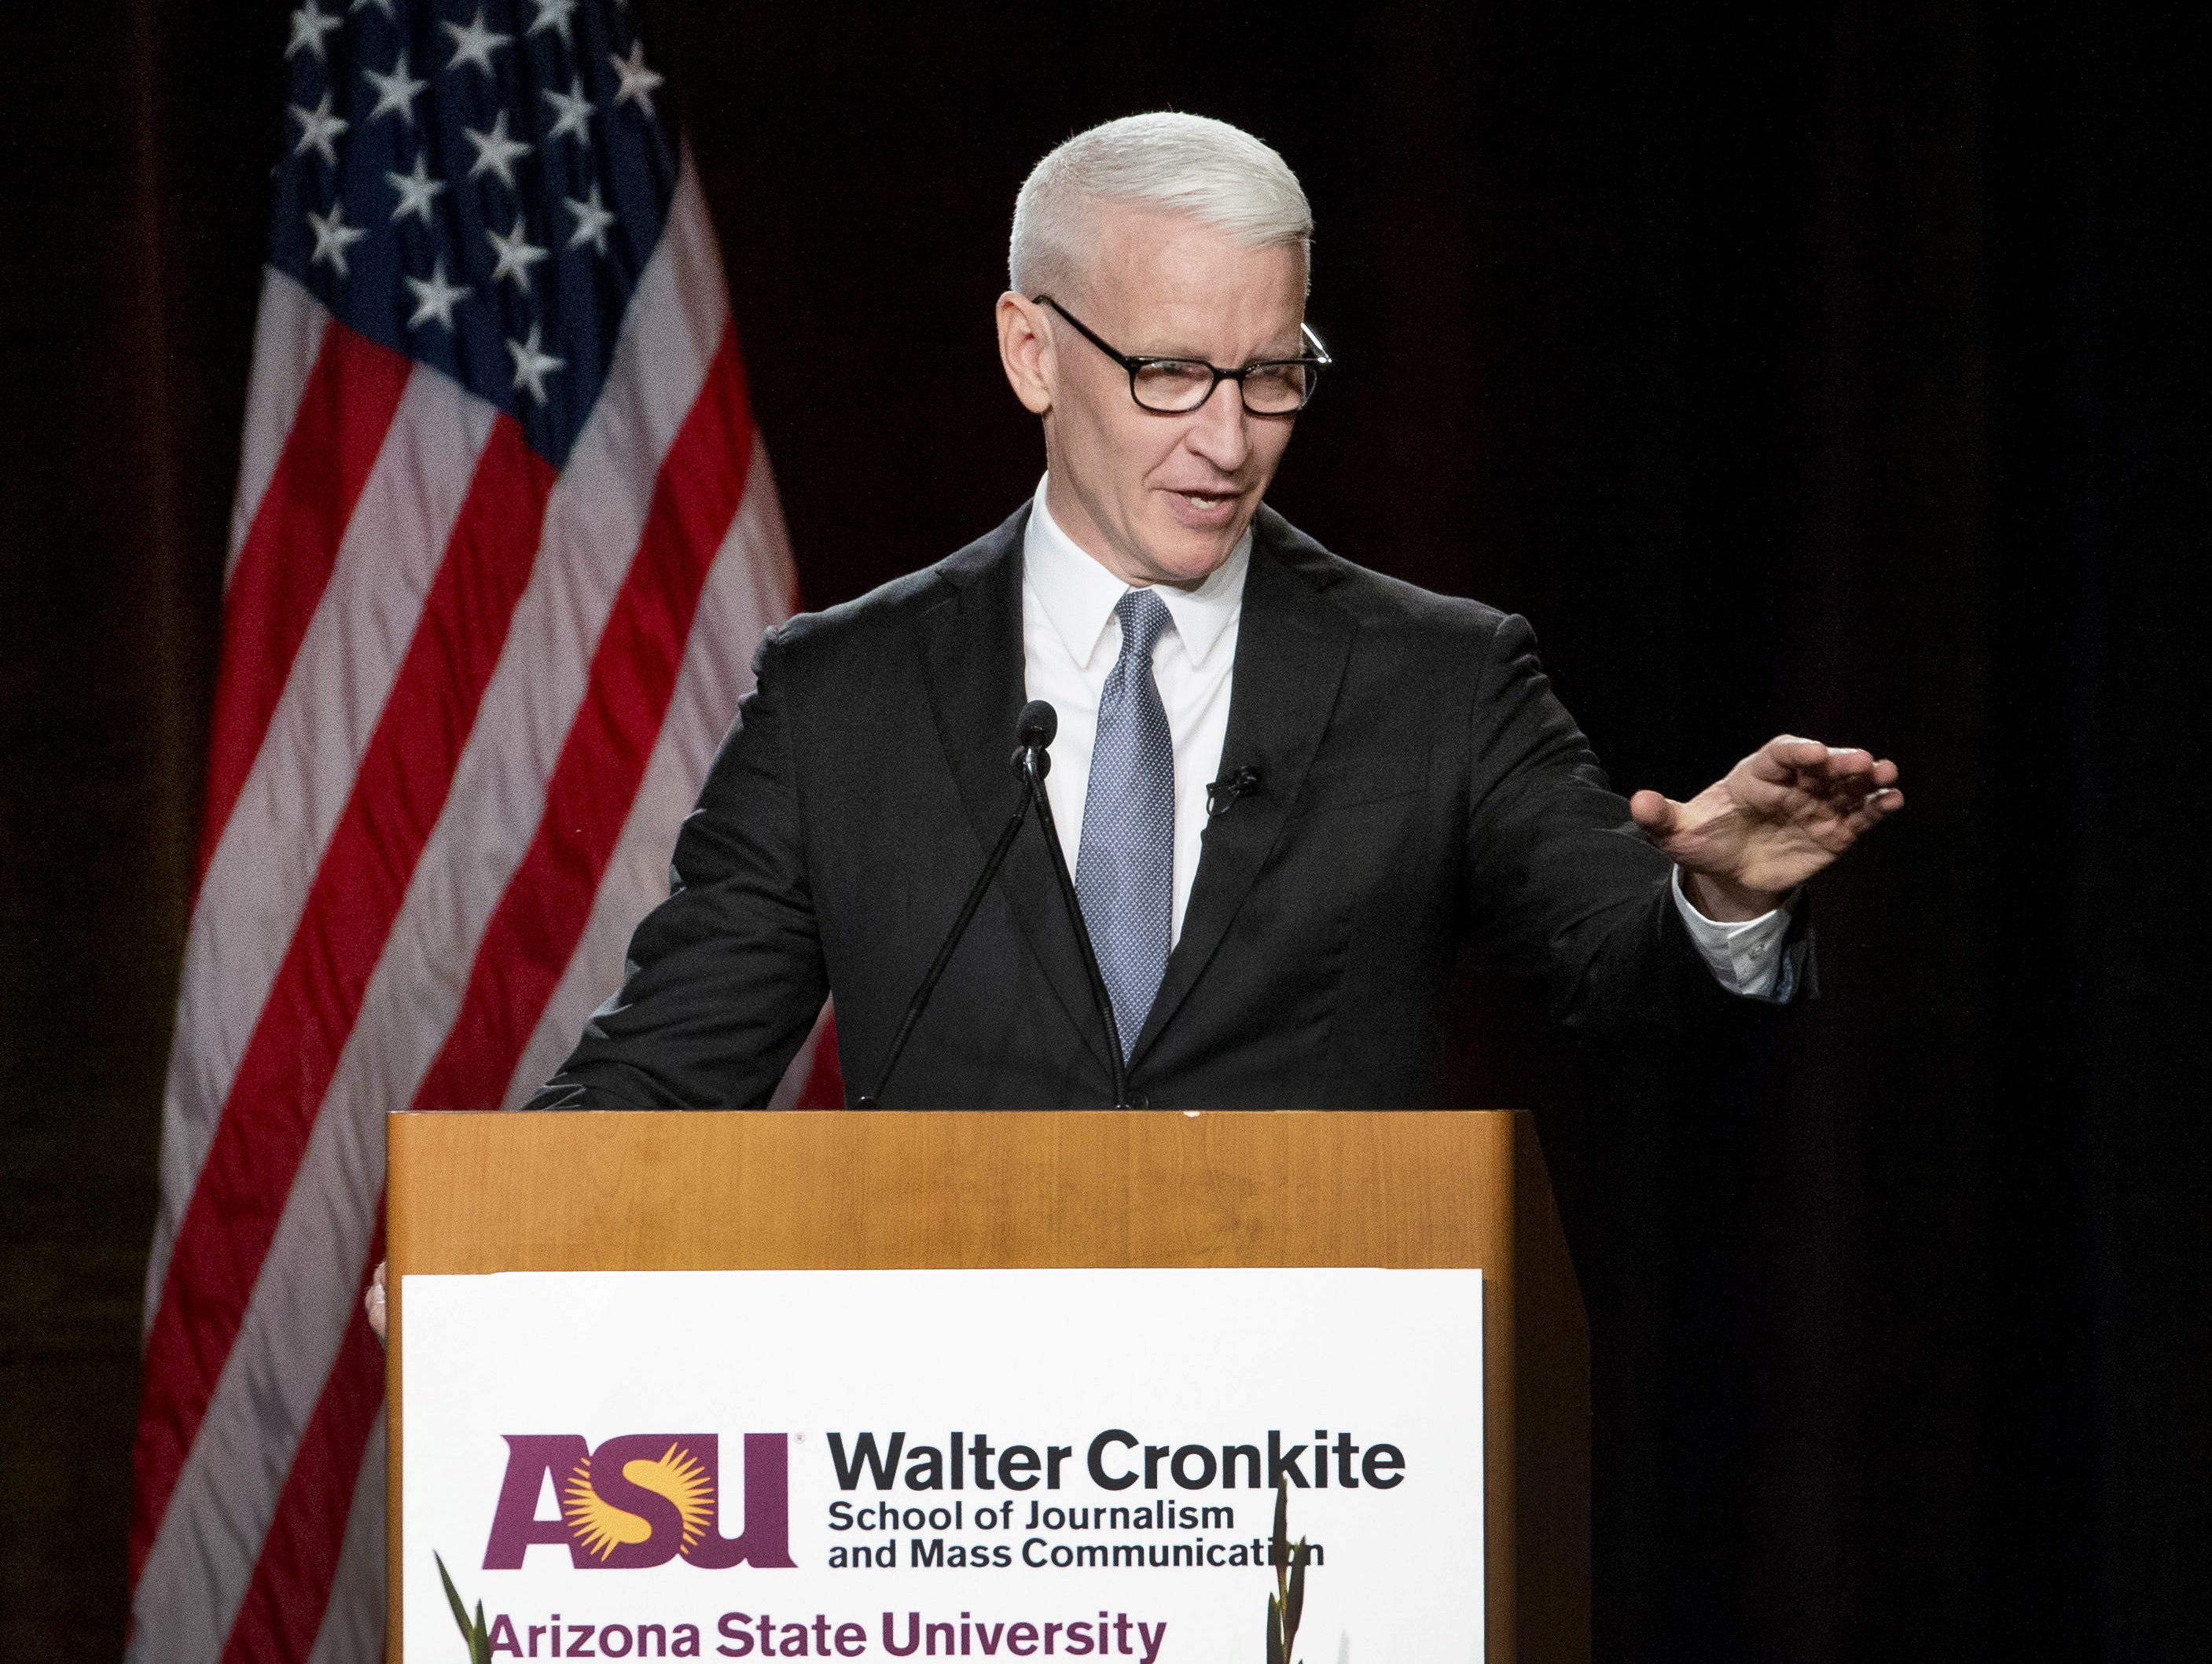 CNN anchor Anderson Cooper speaks after receiving  the annual Cronkite award for excellence in journalism during a luncheon at the Sheraton in Phoenix on October 17, 2018.